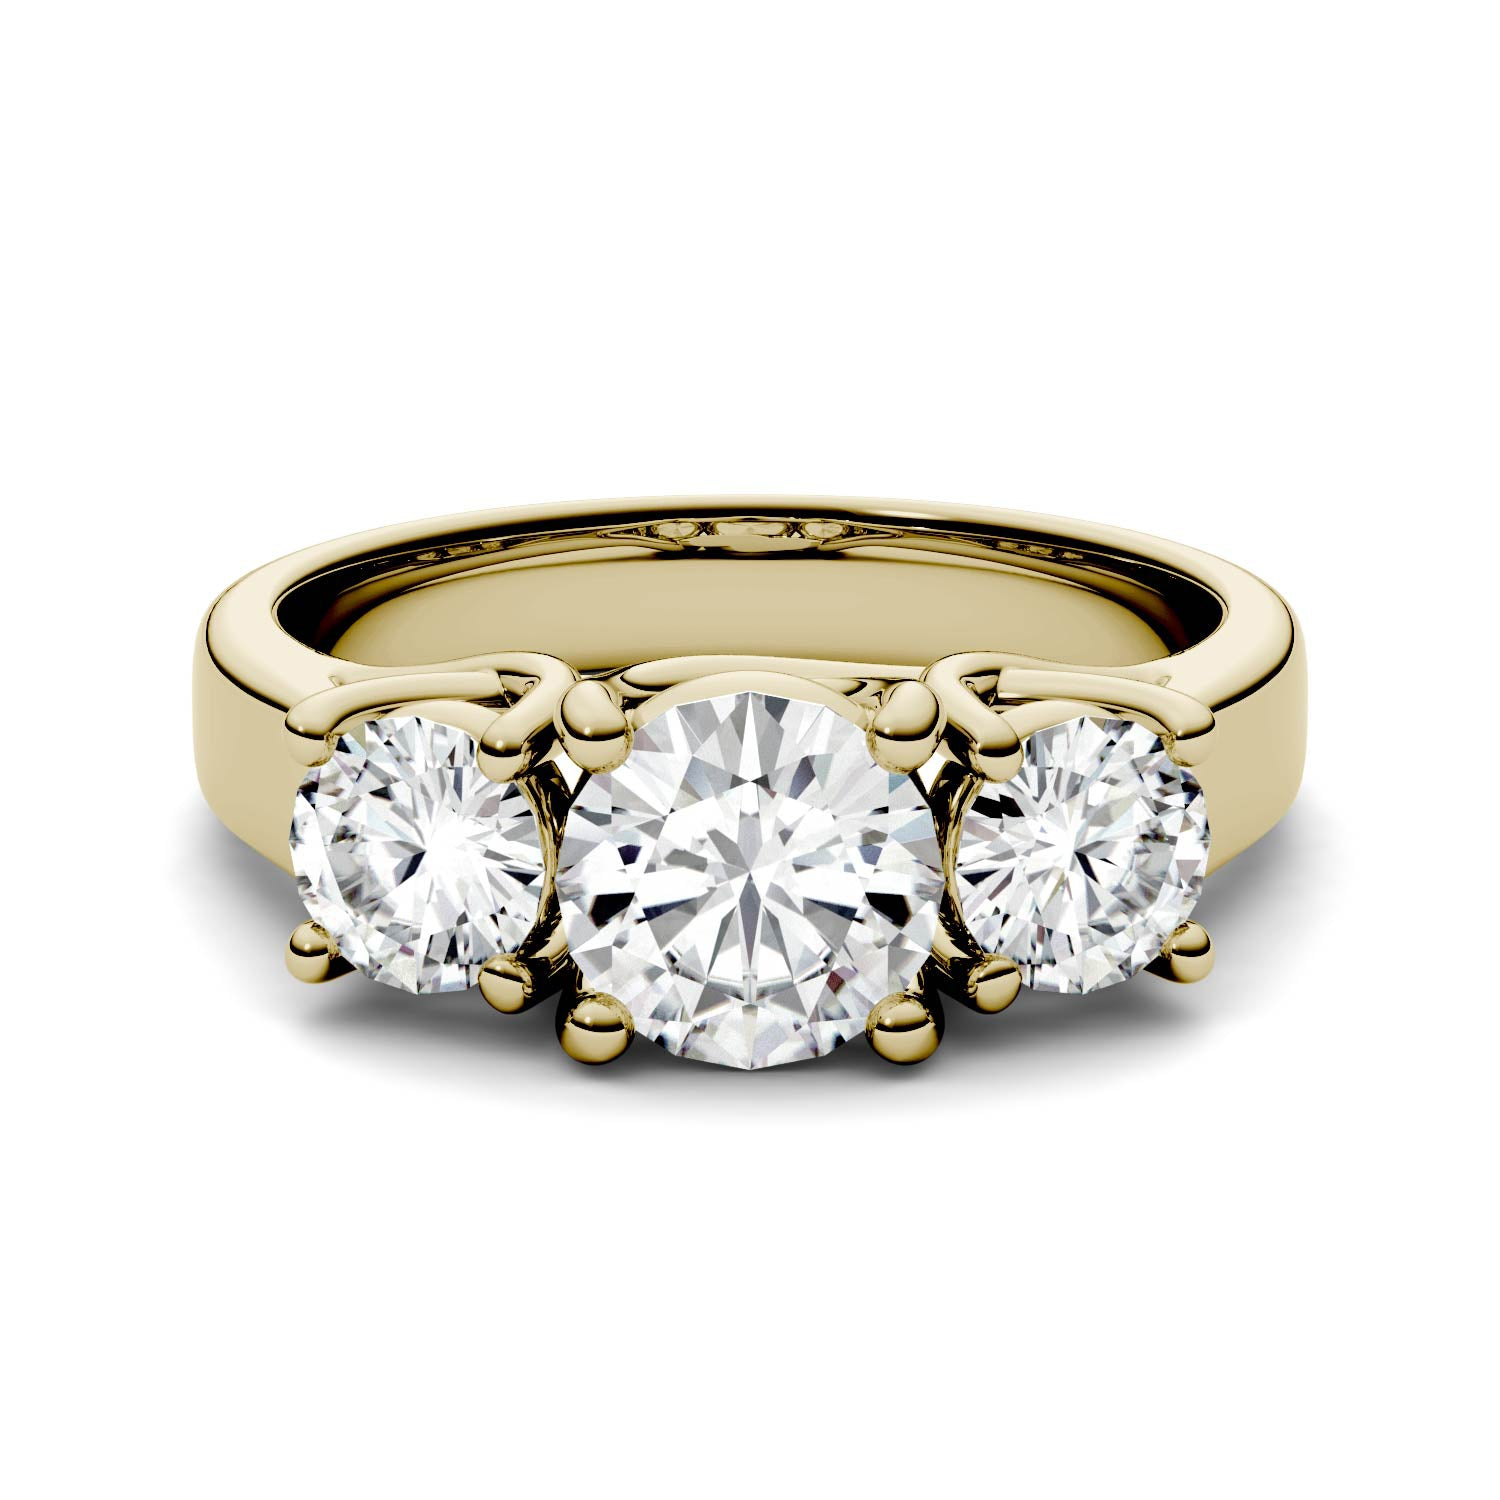 2 Carat TW Charles & Colvard Moissanite Three Stone Ring in Yellow Gold-612281 - Jewelry by Johan